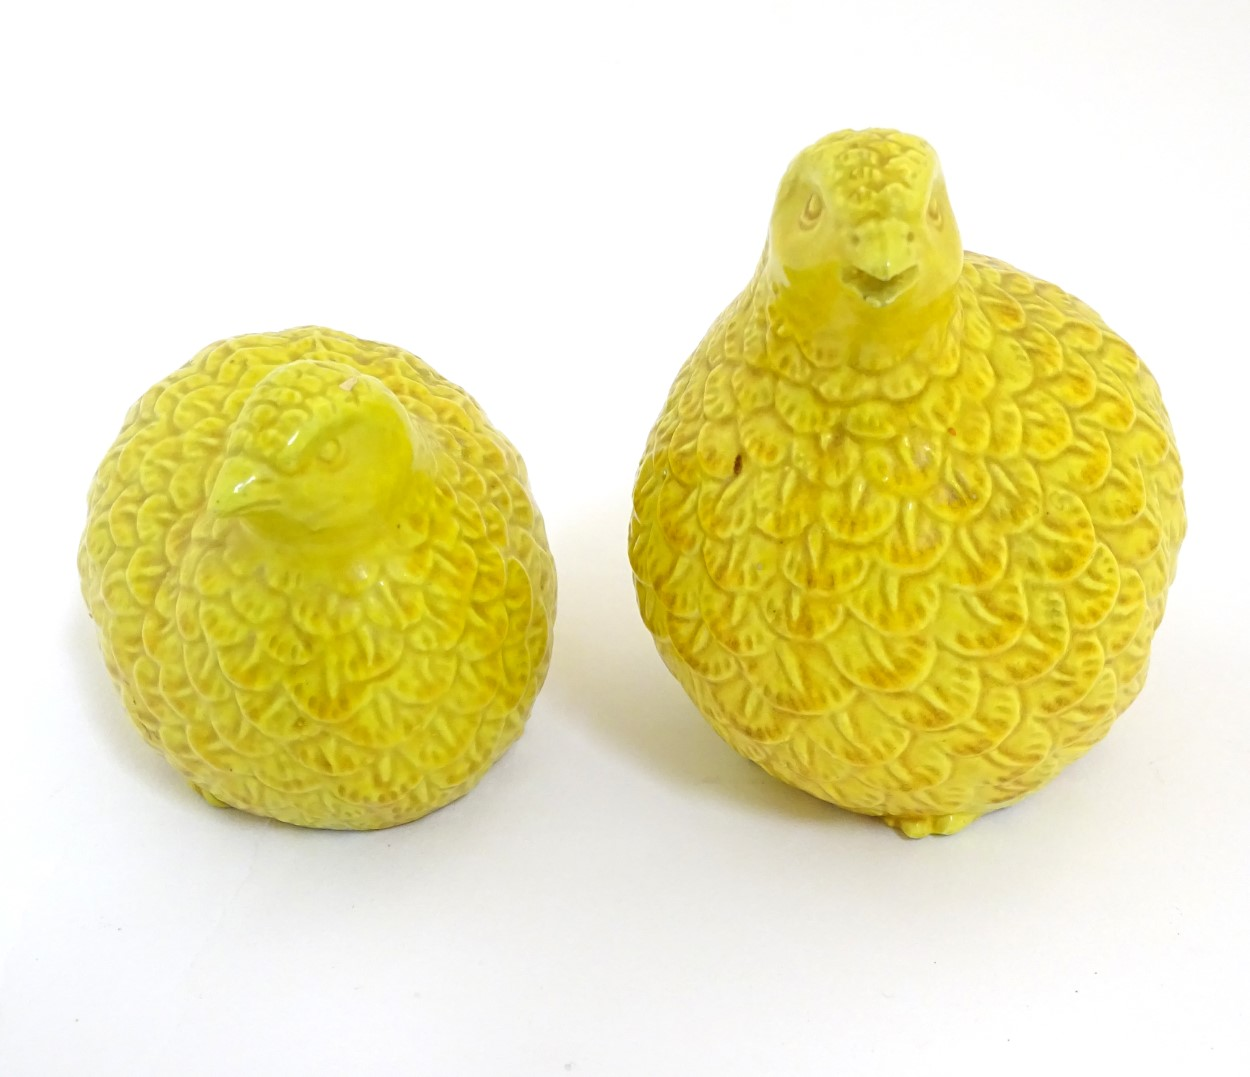 "Lot 34 - Two oriental yellow quail figures. Height of tallest quail: approx. 4 1/2""."